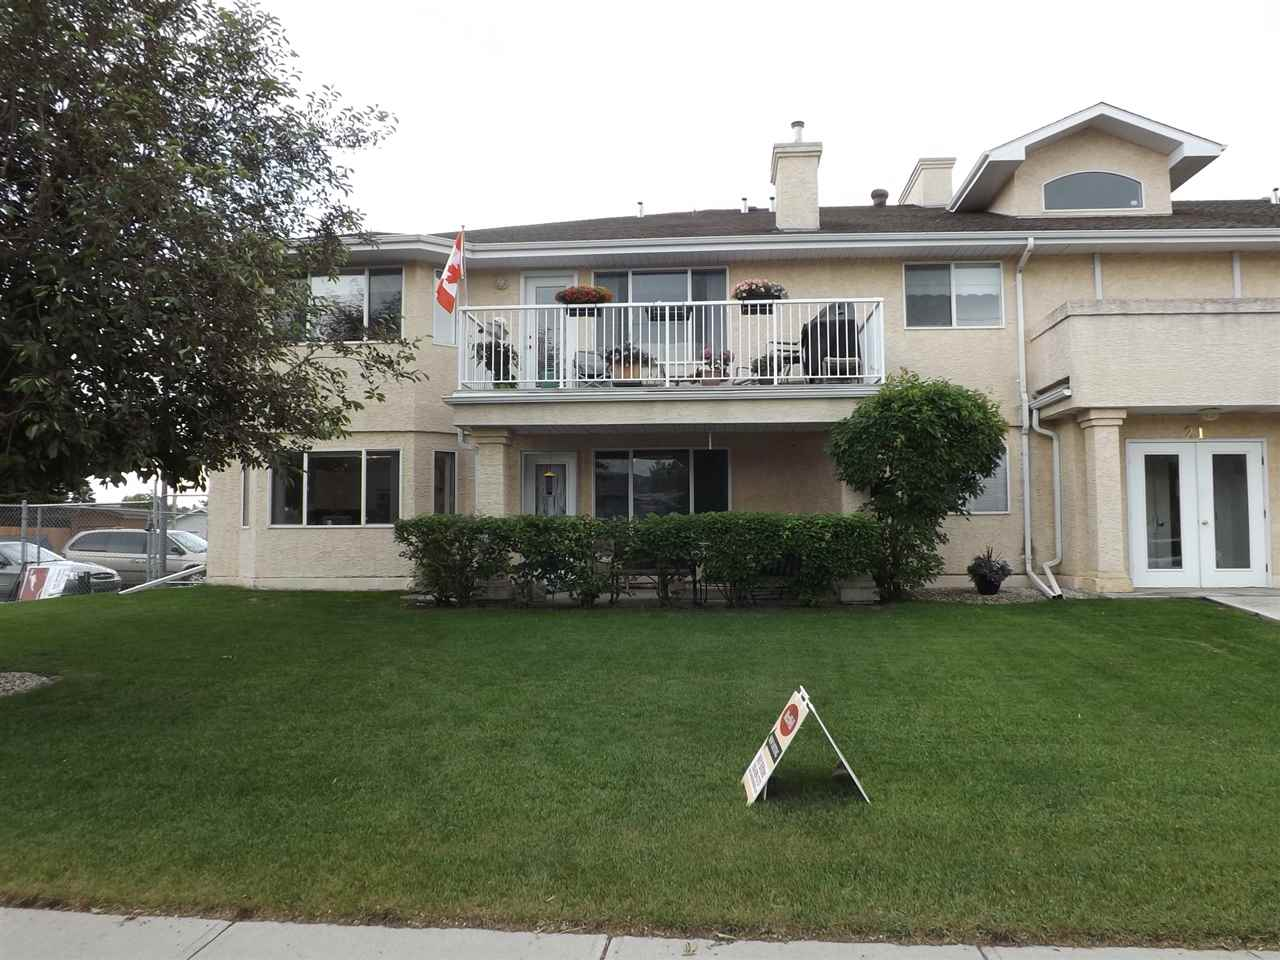 Bright, Open, 2 bedroom, 55+ Adult low rise apartment, handicapped accessible with a single detached garage. Featuring newer carpeting, recent painting, laminate flooring, a bright open eat in country kitchen with lots of counter space, 5 appliances, a bay window,  spacious living room & a garden door out to a covered patio. There is also a large laundry room with cabinets, 4 pc. main bath, an oversized master bedroom with a walk-in closet & 3 pc. ensuite, and a second bedroom with double closets. Great central location close to parks, walking trails & all amenities. Just Move in & Enjoy!!!